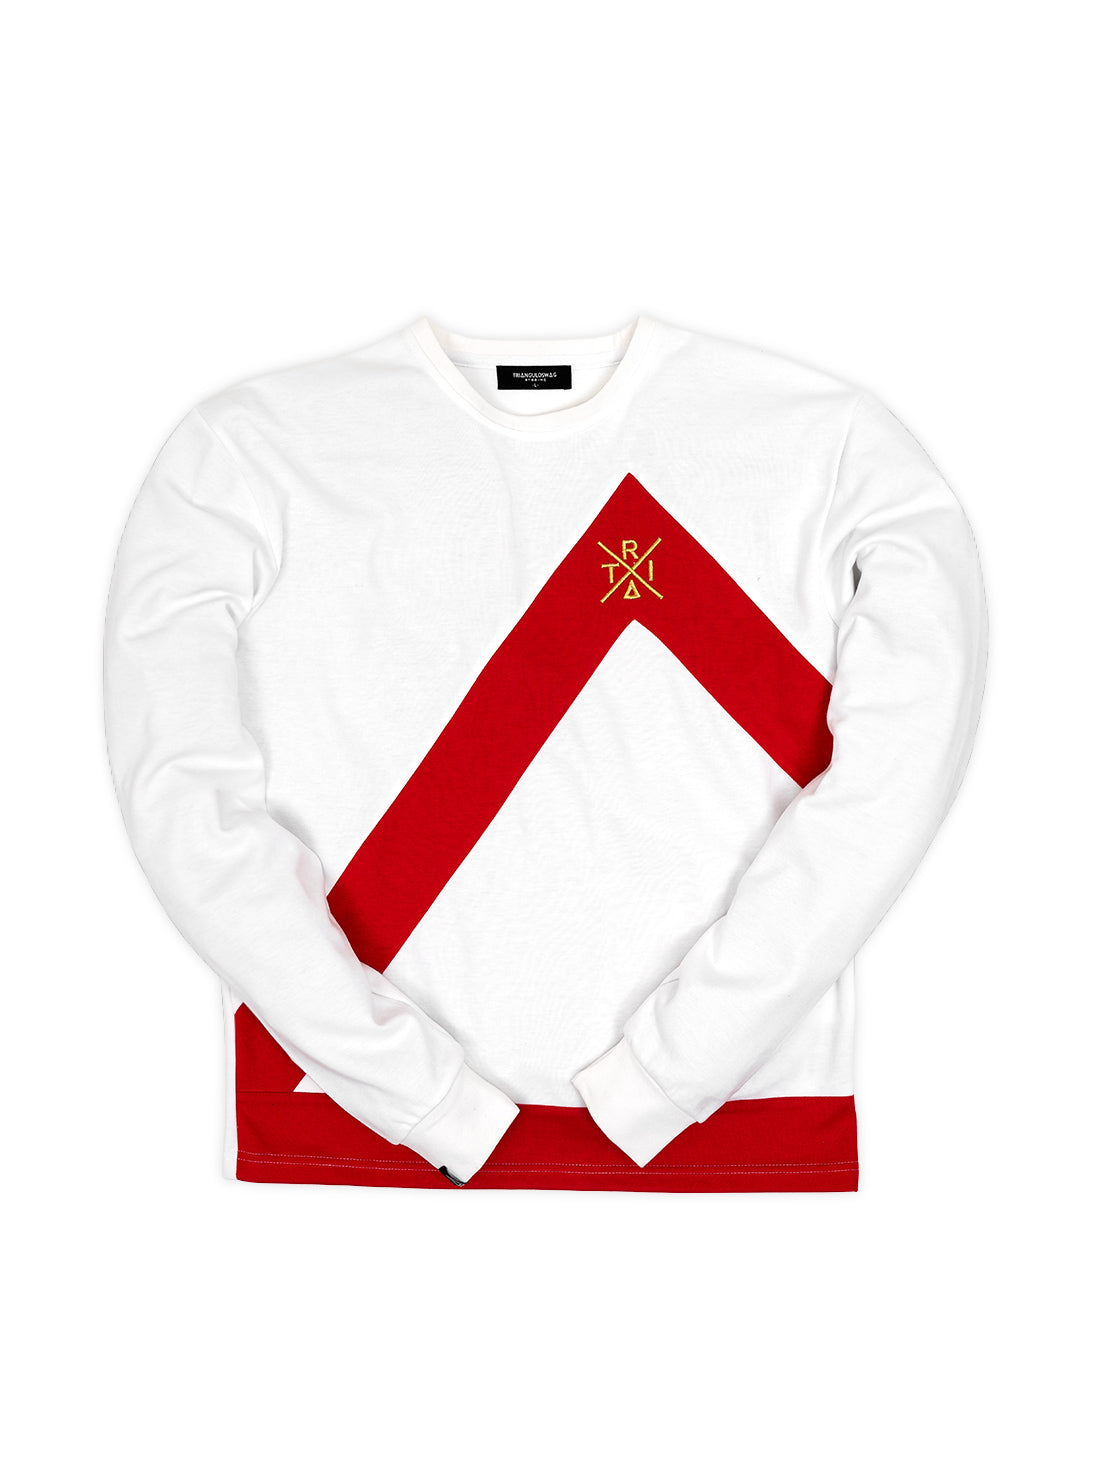 WHITE / RED Triangulo Crewneck - Triangulo Swag